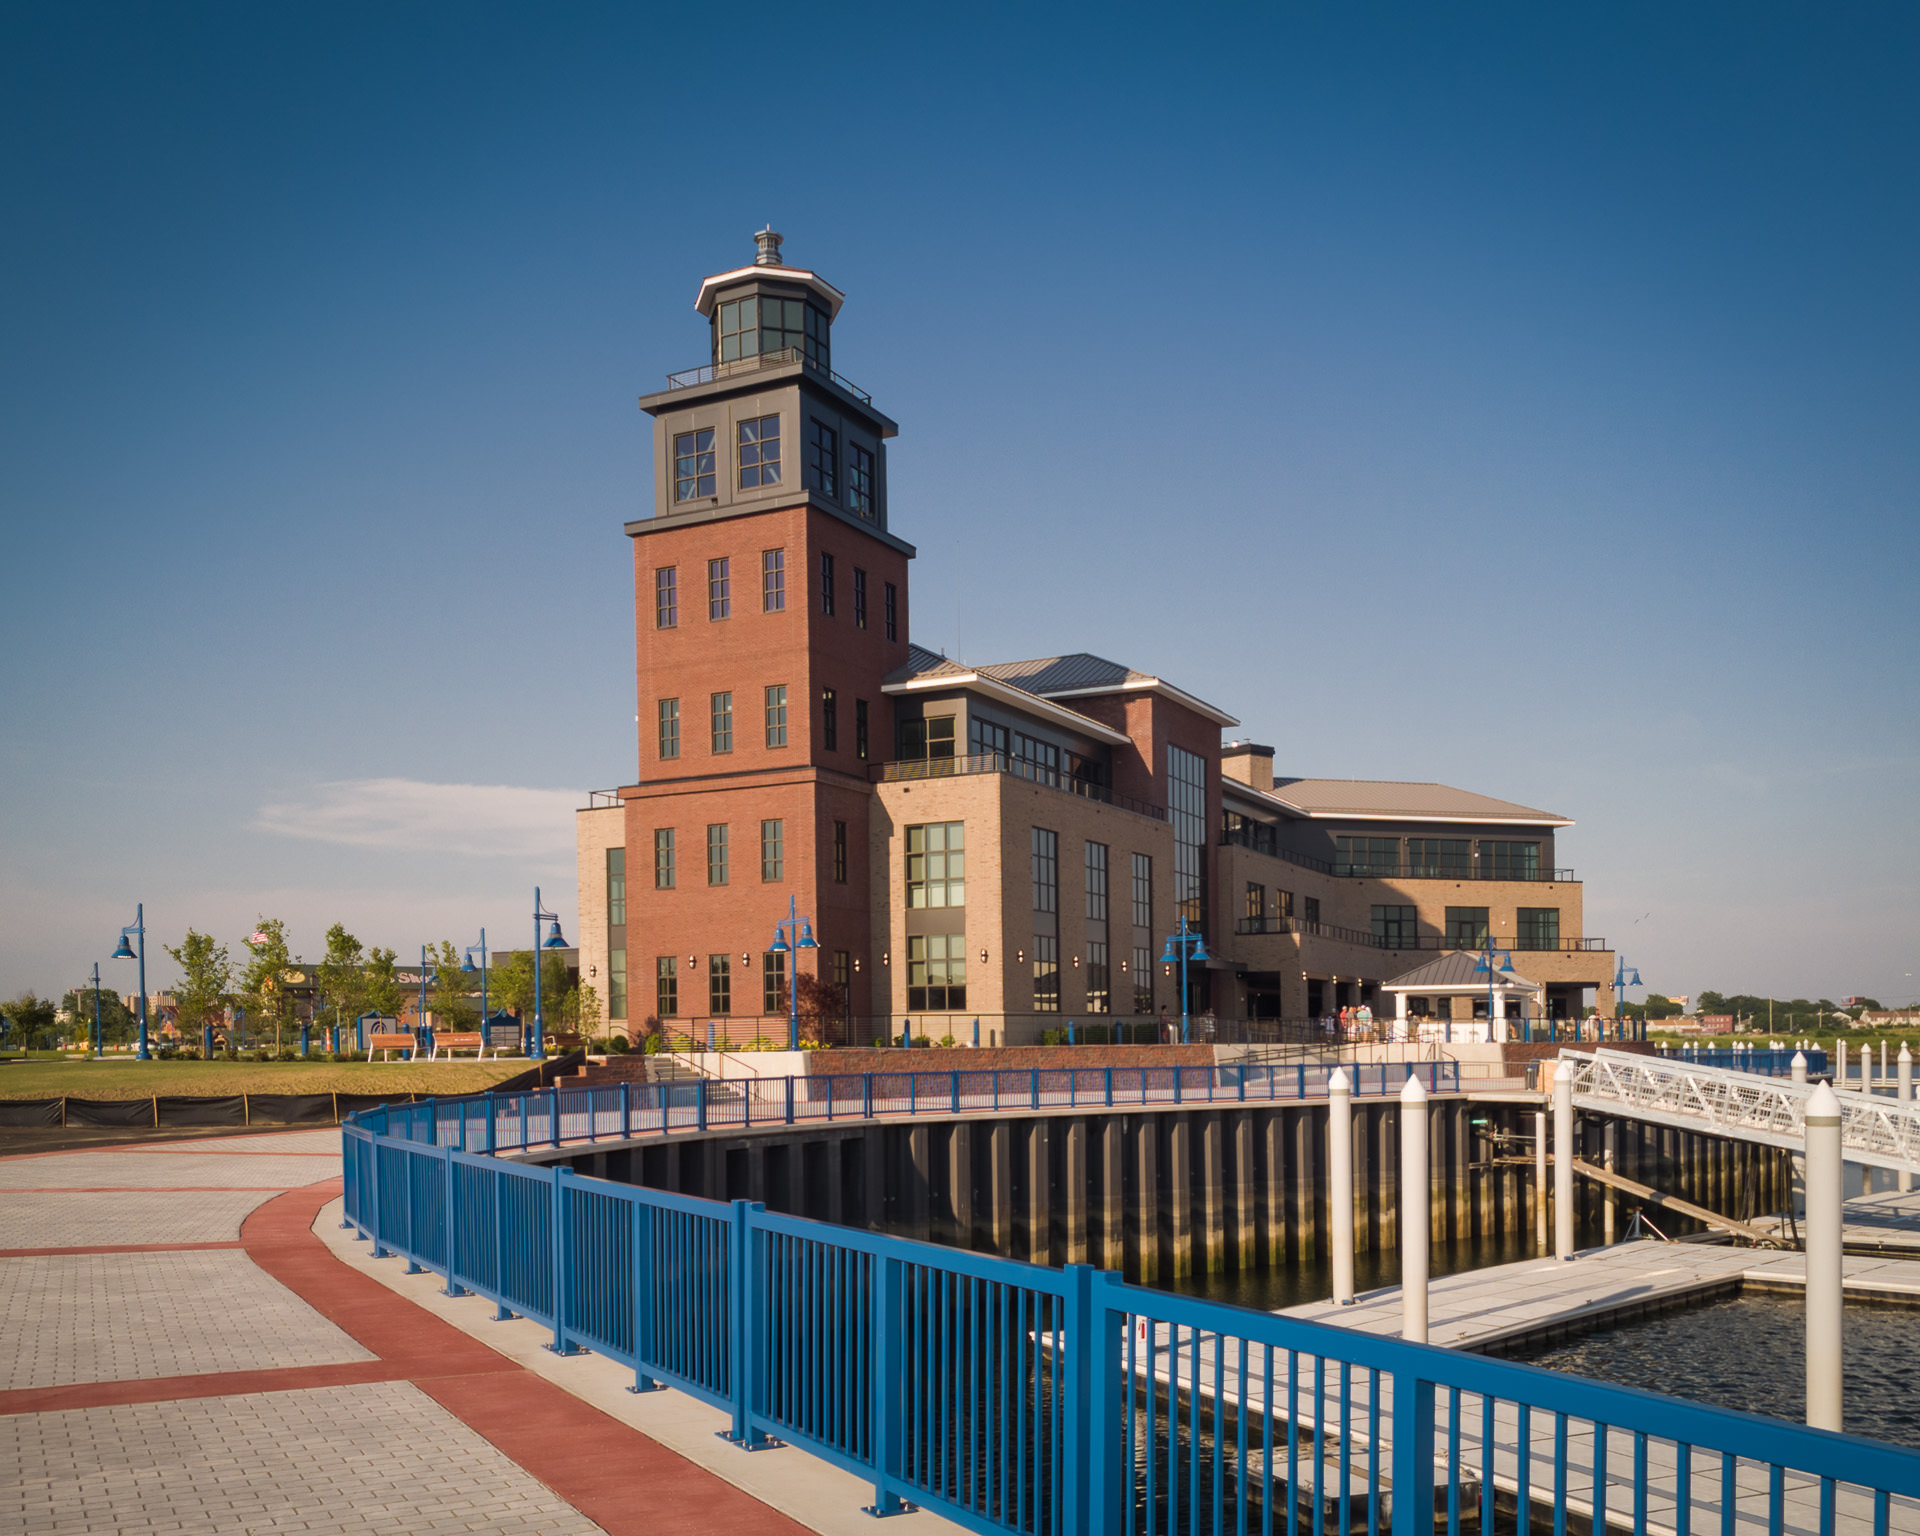 Dockmasters Building at the Steelpointe Harbor Marina, Bridgeport CT